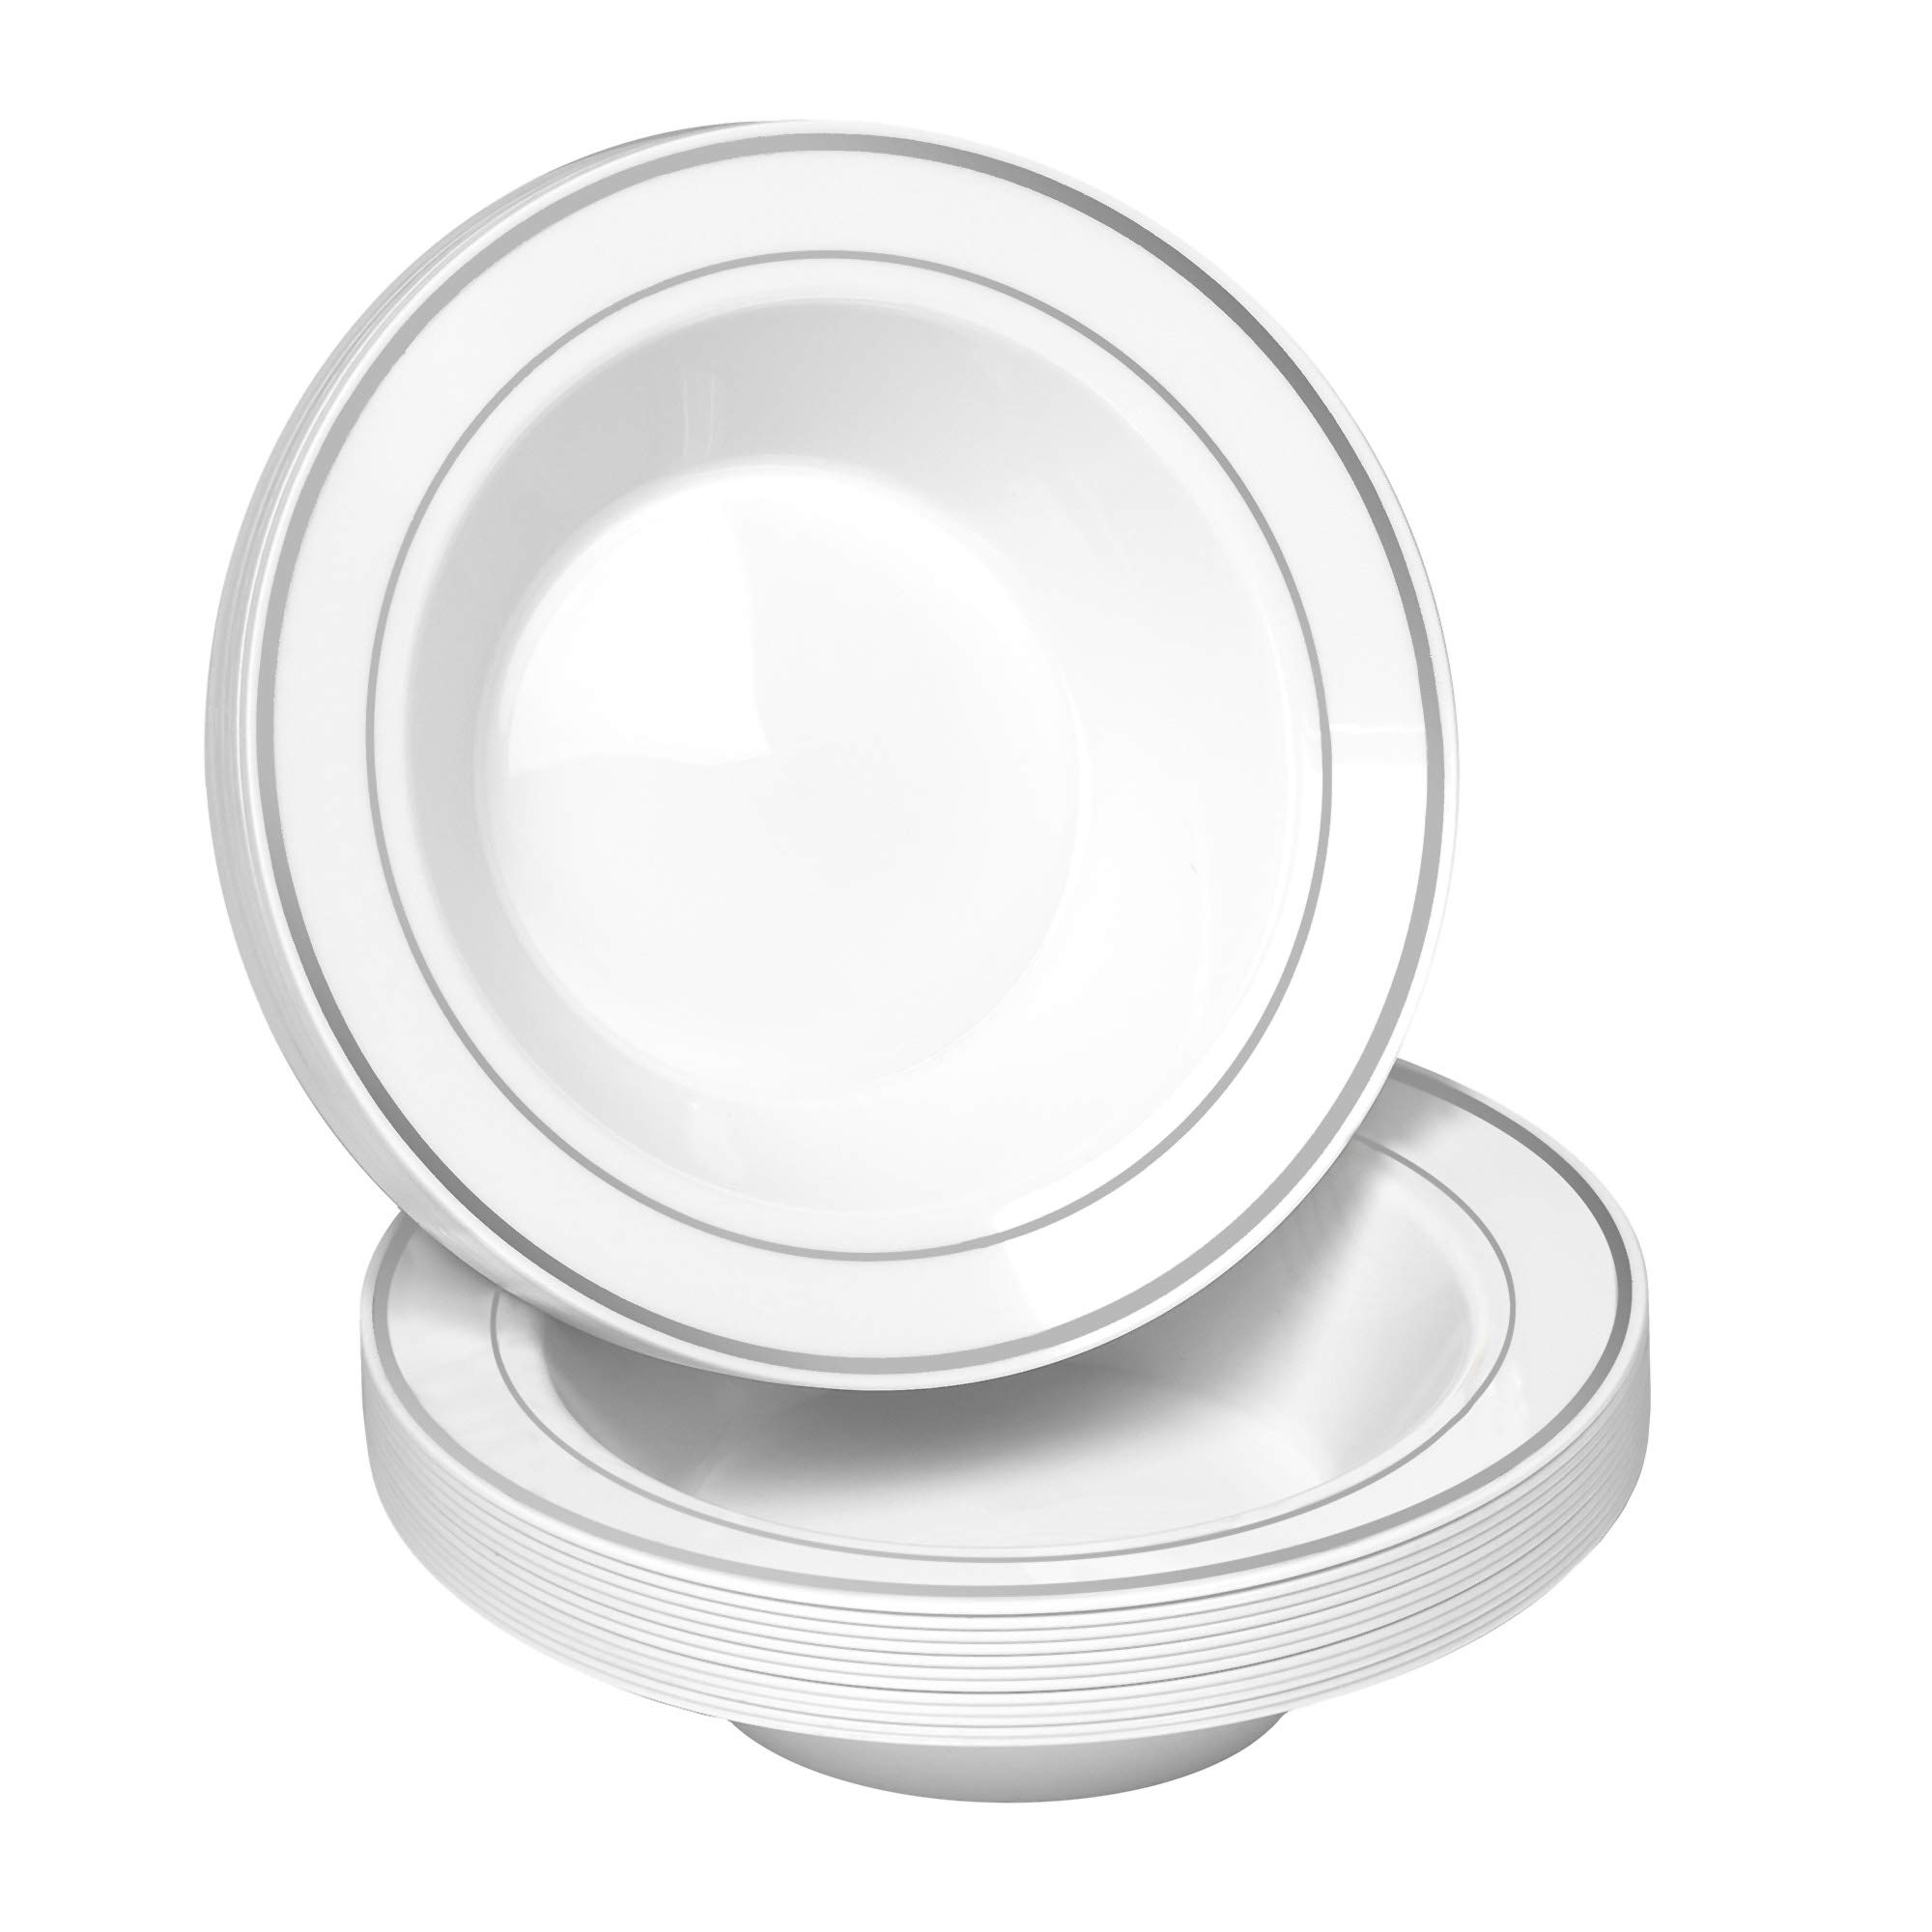 50 Disposable White Silver Rimmed Plastic Soup Bowls | 14 oz. Premium Heavy Duty Disposable Dinnerware with Real China Design | Safe & Reusable (50-Pack White/Silver Trim) by Bloomingoods by BloominGoods